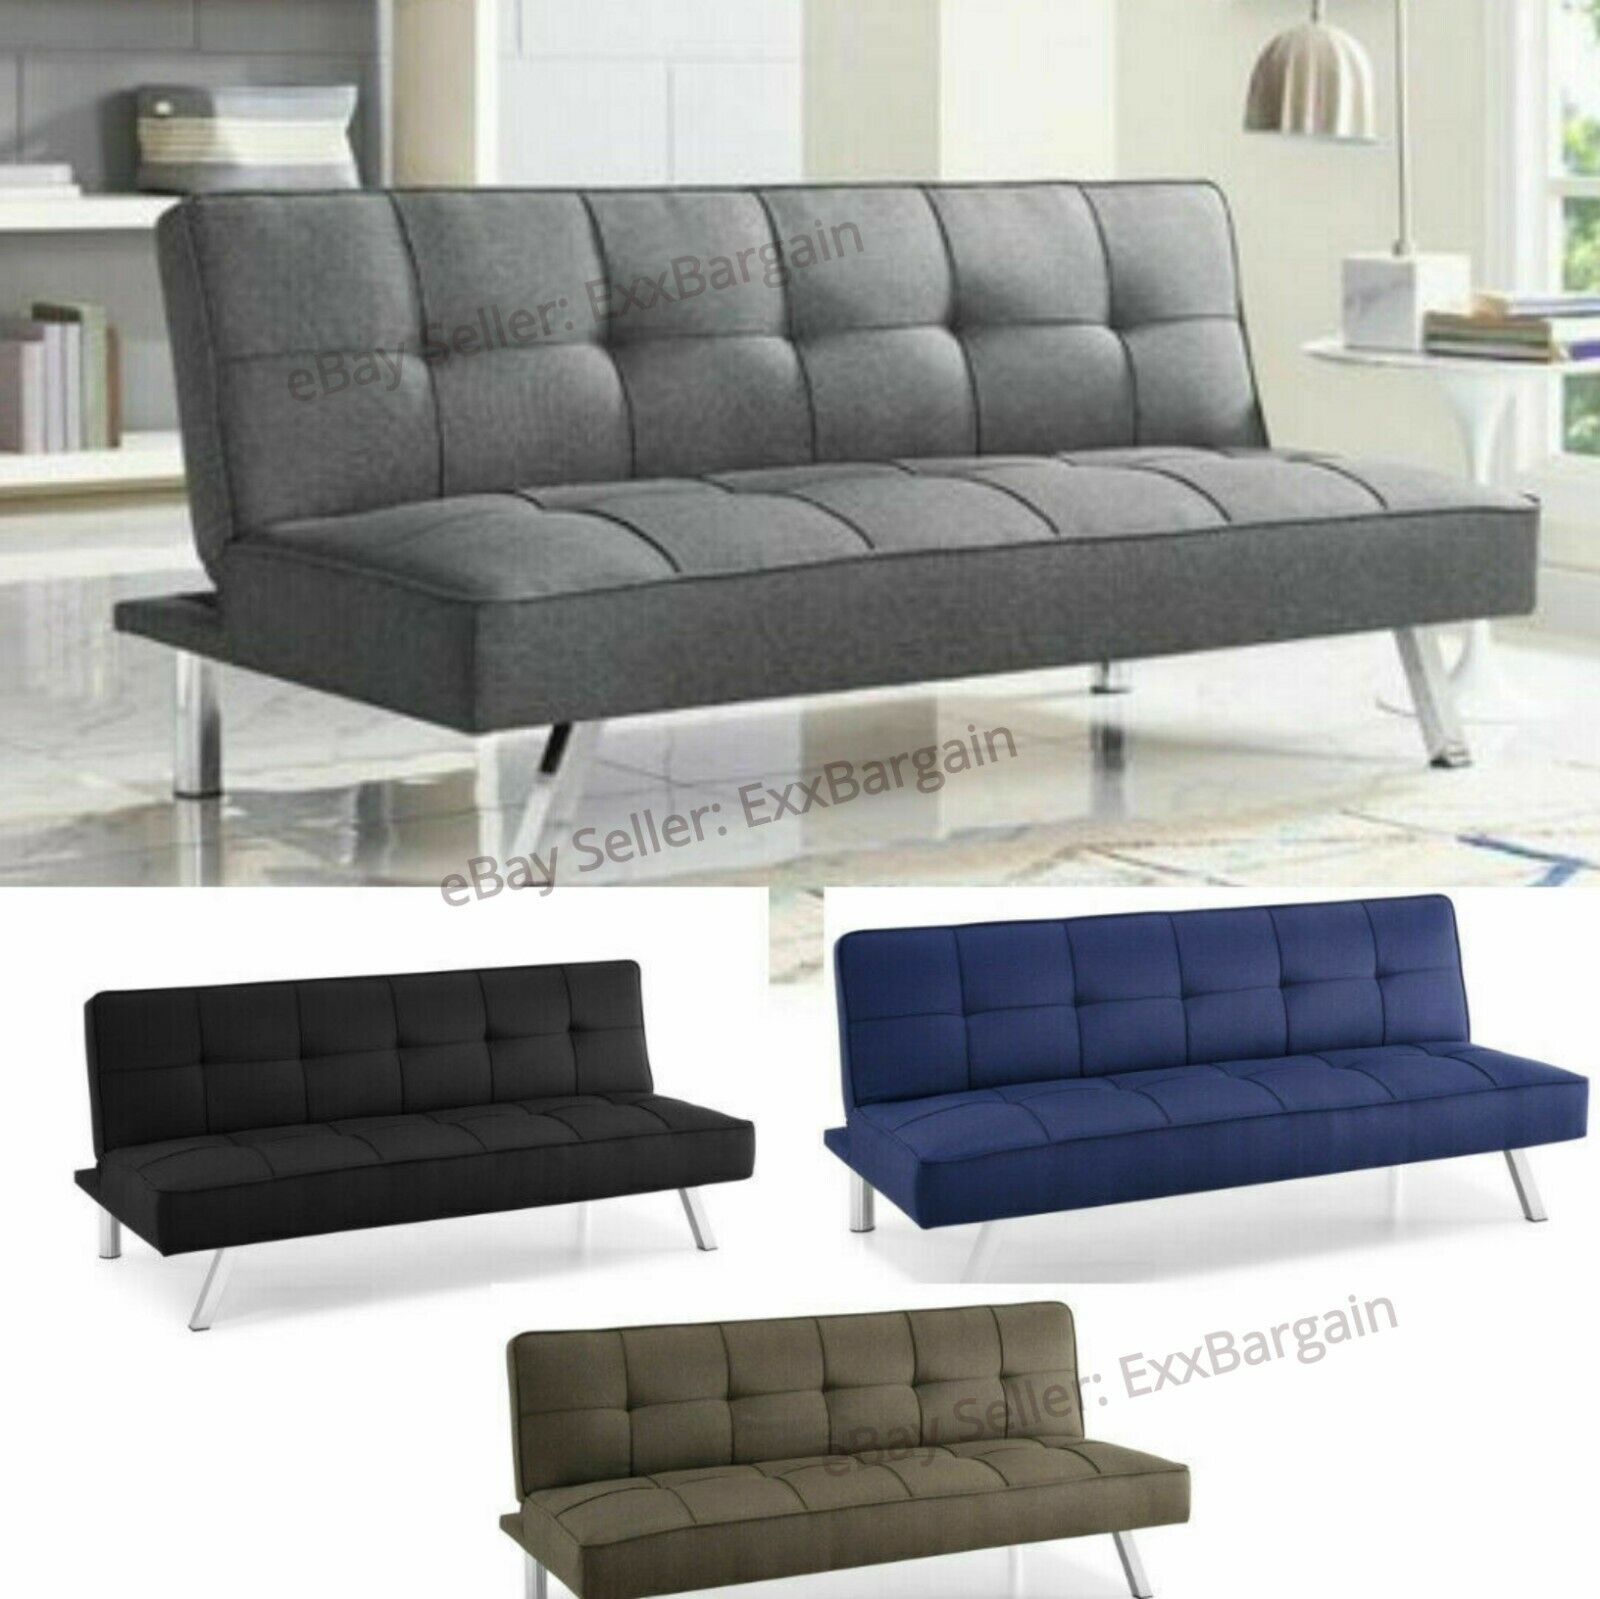 Modern Futon Sofa Couch Bed Sleeper Convertible Lounge Livin